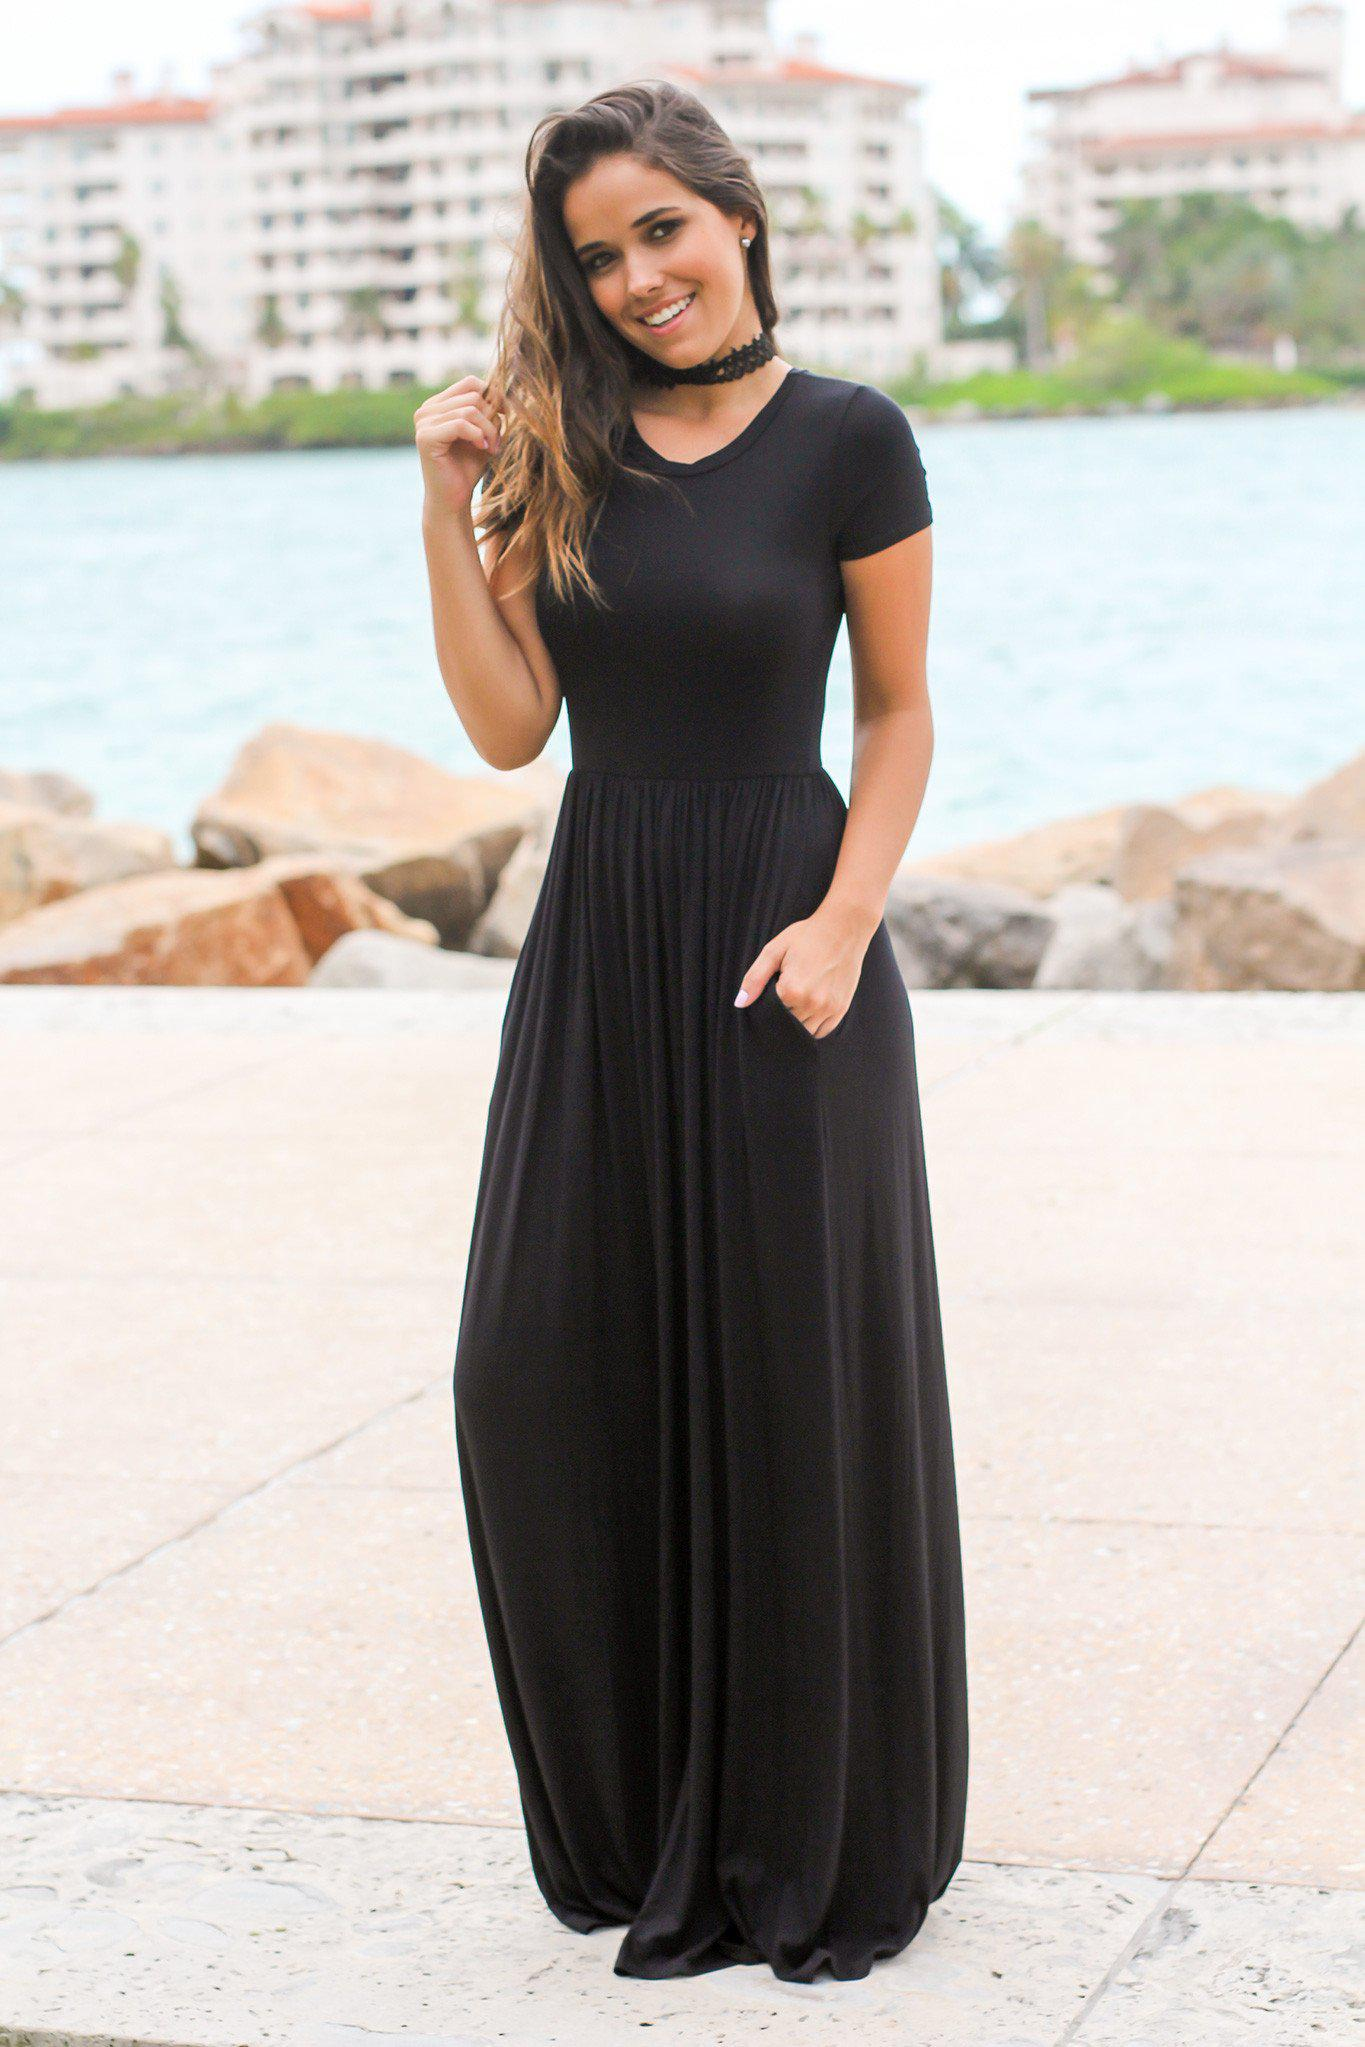 Batwing sleeves and Grecian maxi dresses will give you a sweeter look with some details and twist on the sleeves, very understated and not too overwhelmed as a maxi dress. Flutter sleeve maxi dress is also one of our bestsellers.